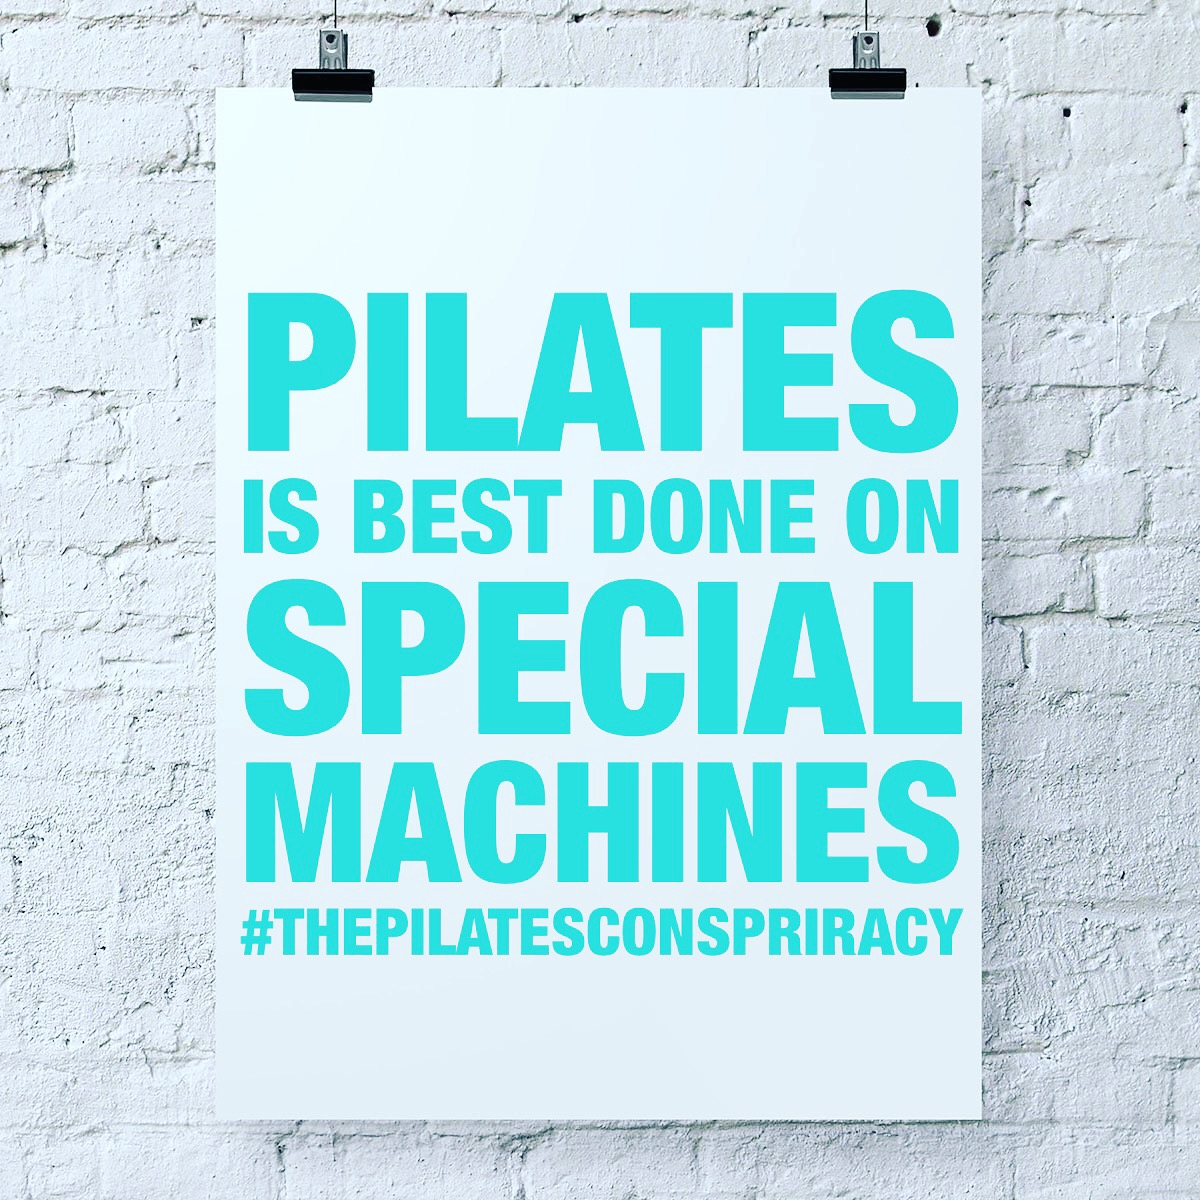 Pilates is best done on special machines